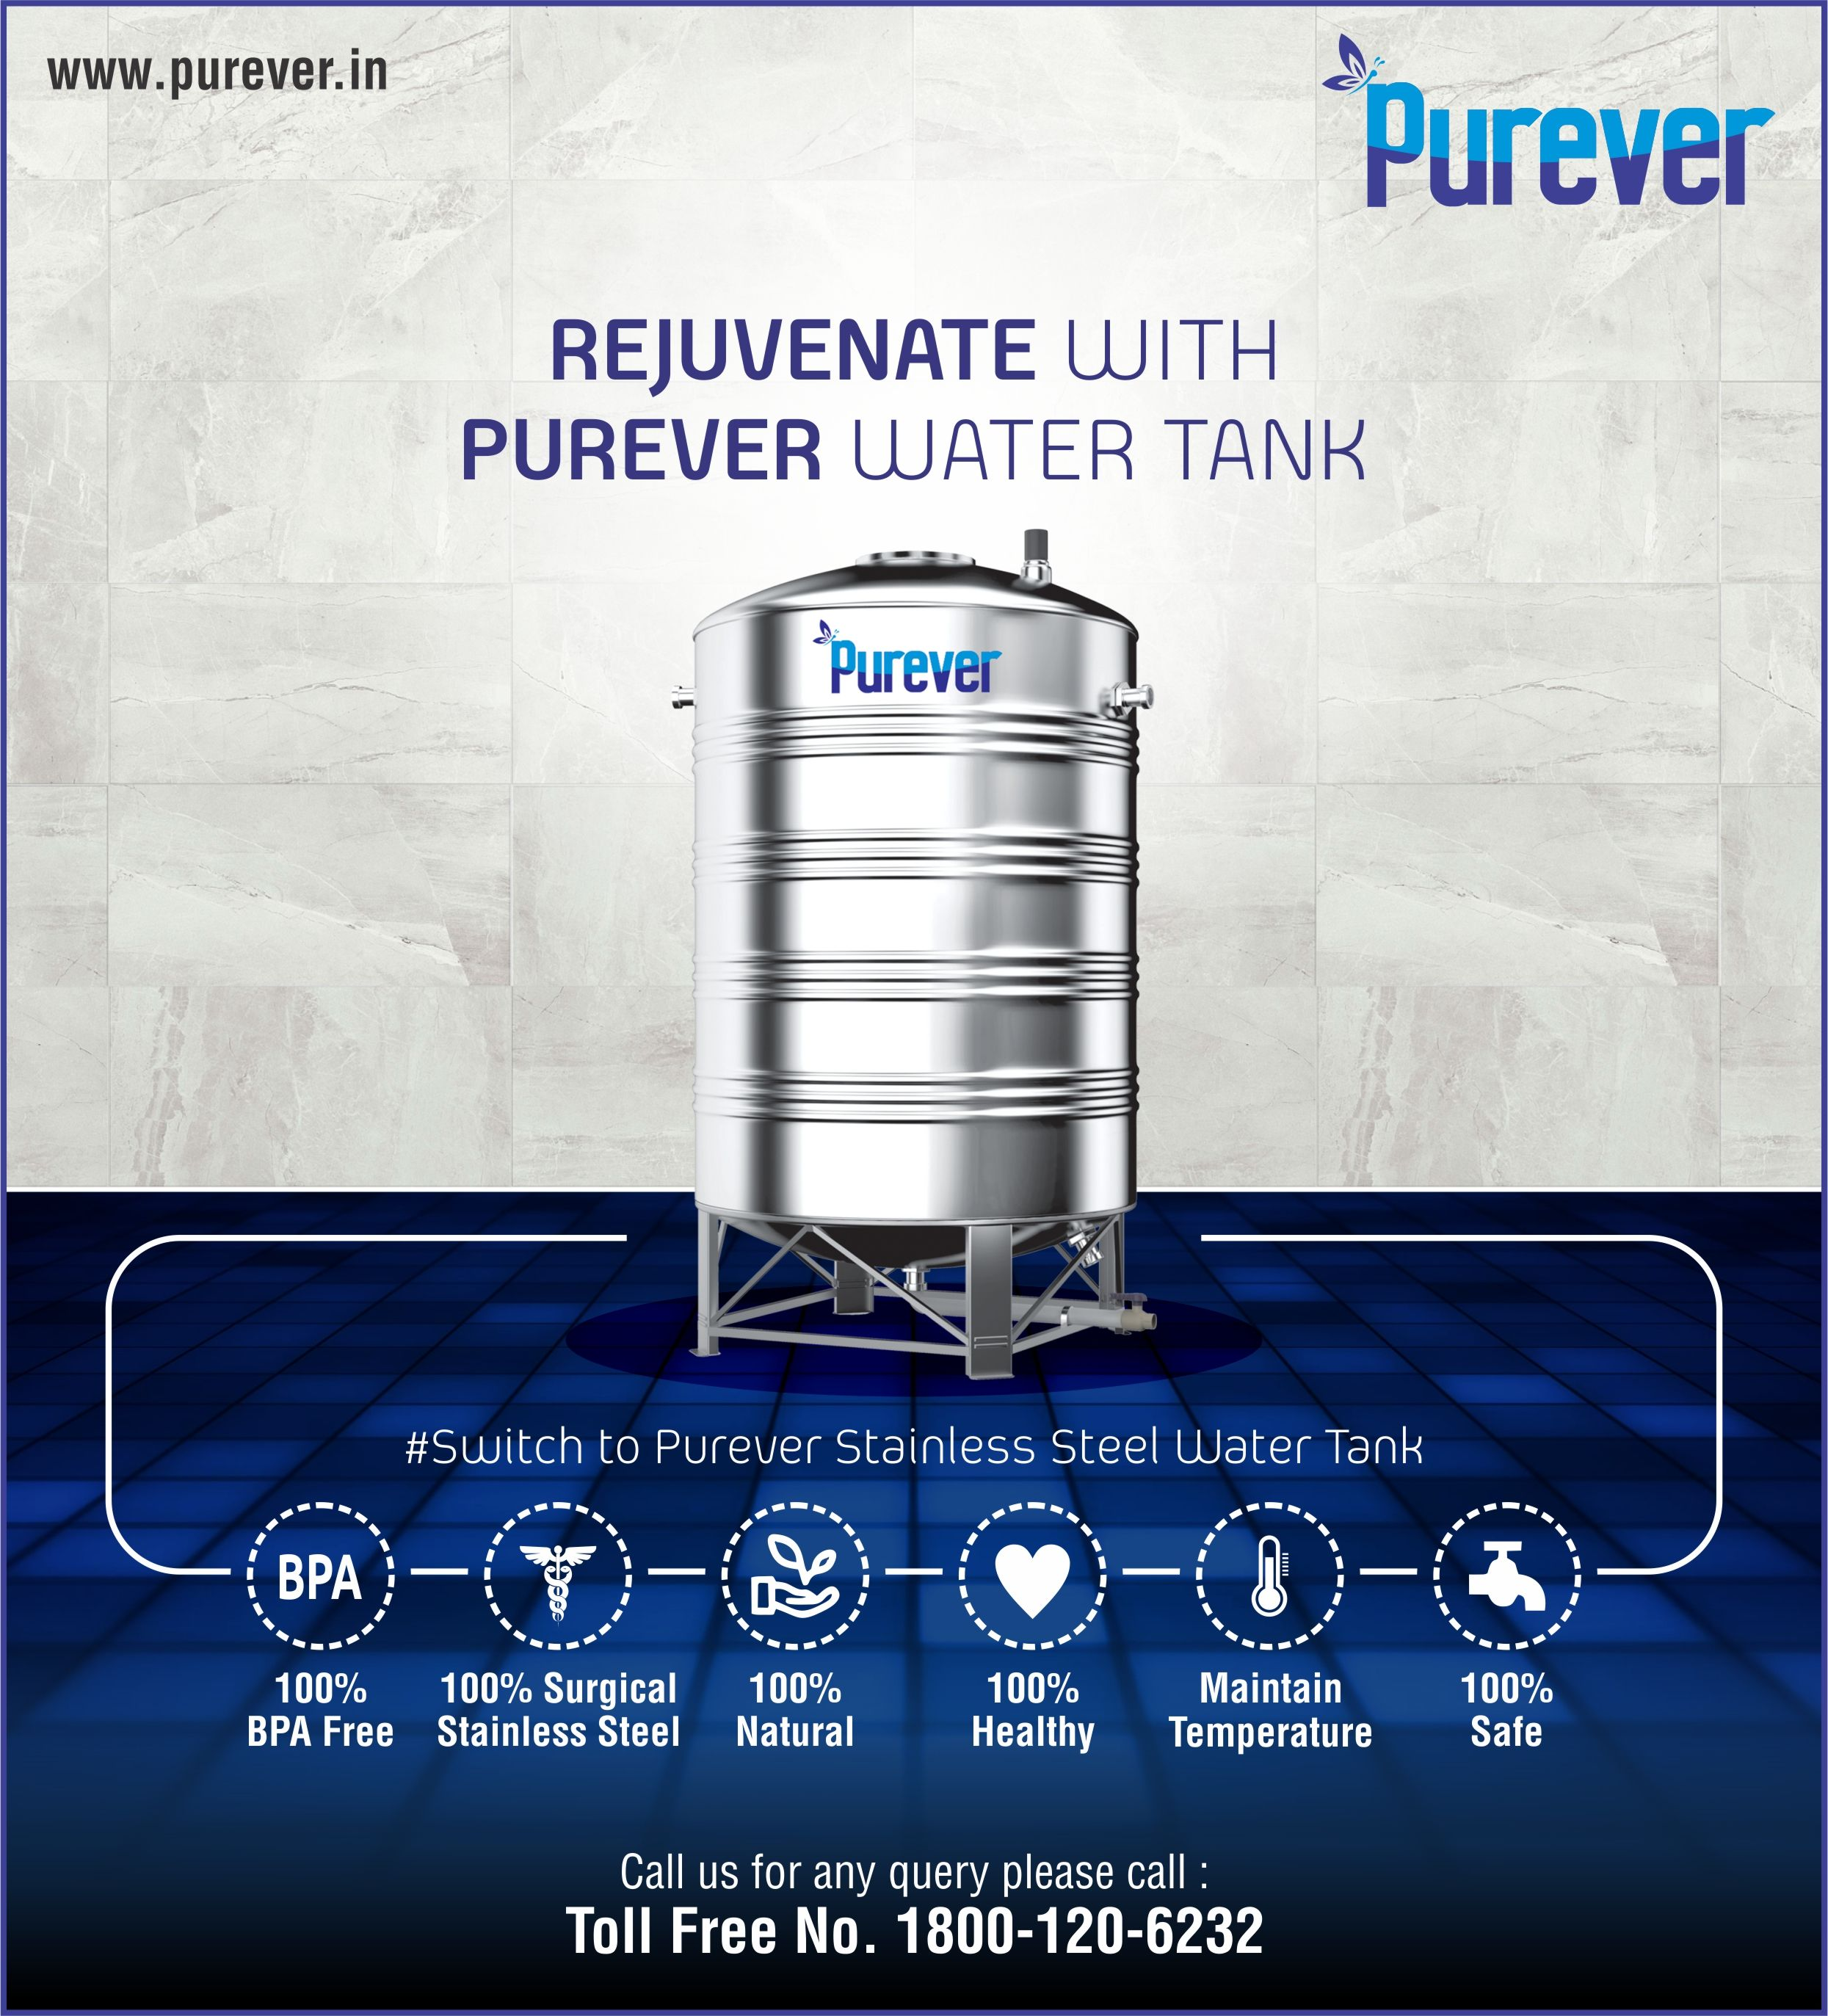 Rejuvenate With Purever Water Tank 100 Bpa Free 100 Surgical Stainless Steel 100 Natural 100 Healthy 100 Steel Water Tanks Water Tank Steel Water